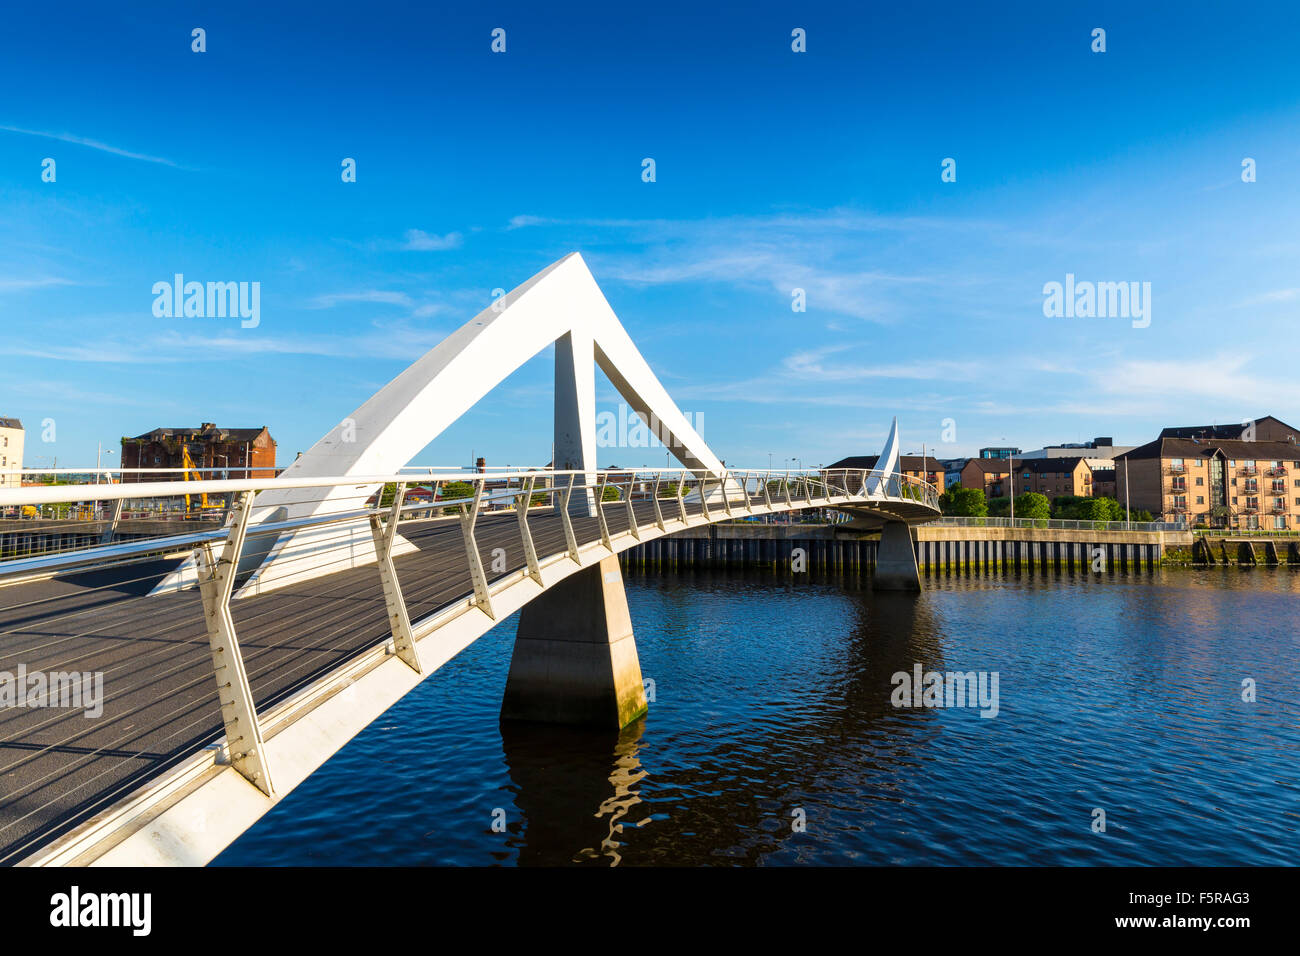 The Tradeston Bridge (Tredstoun) known as the squiggly bridge, a pedestrian bridge across the River Clyde in Glasgow, - Stock Image